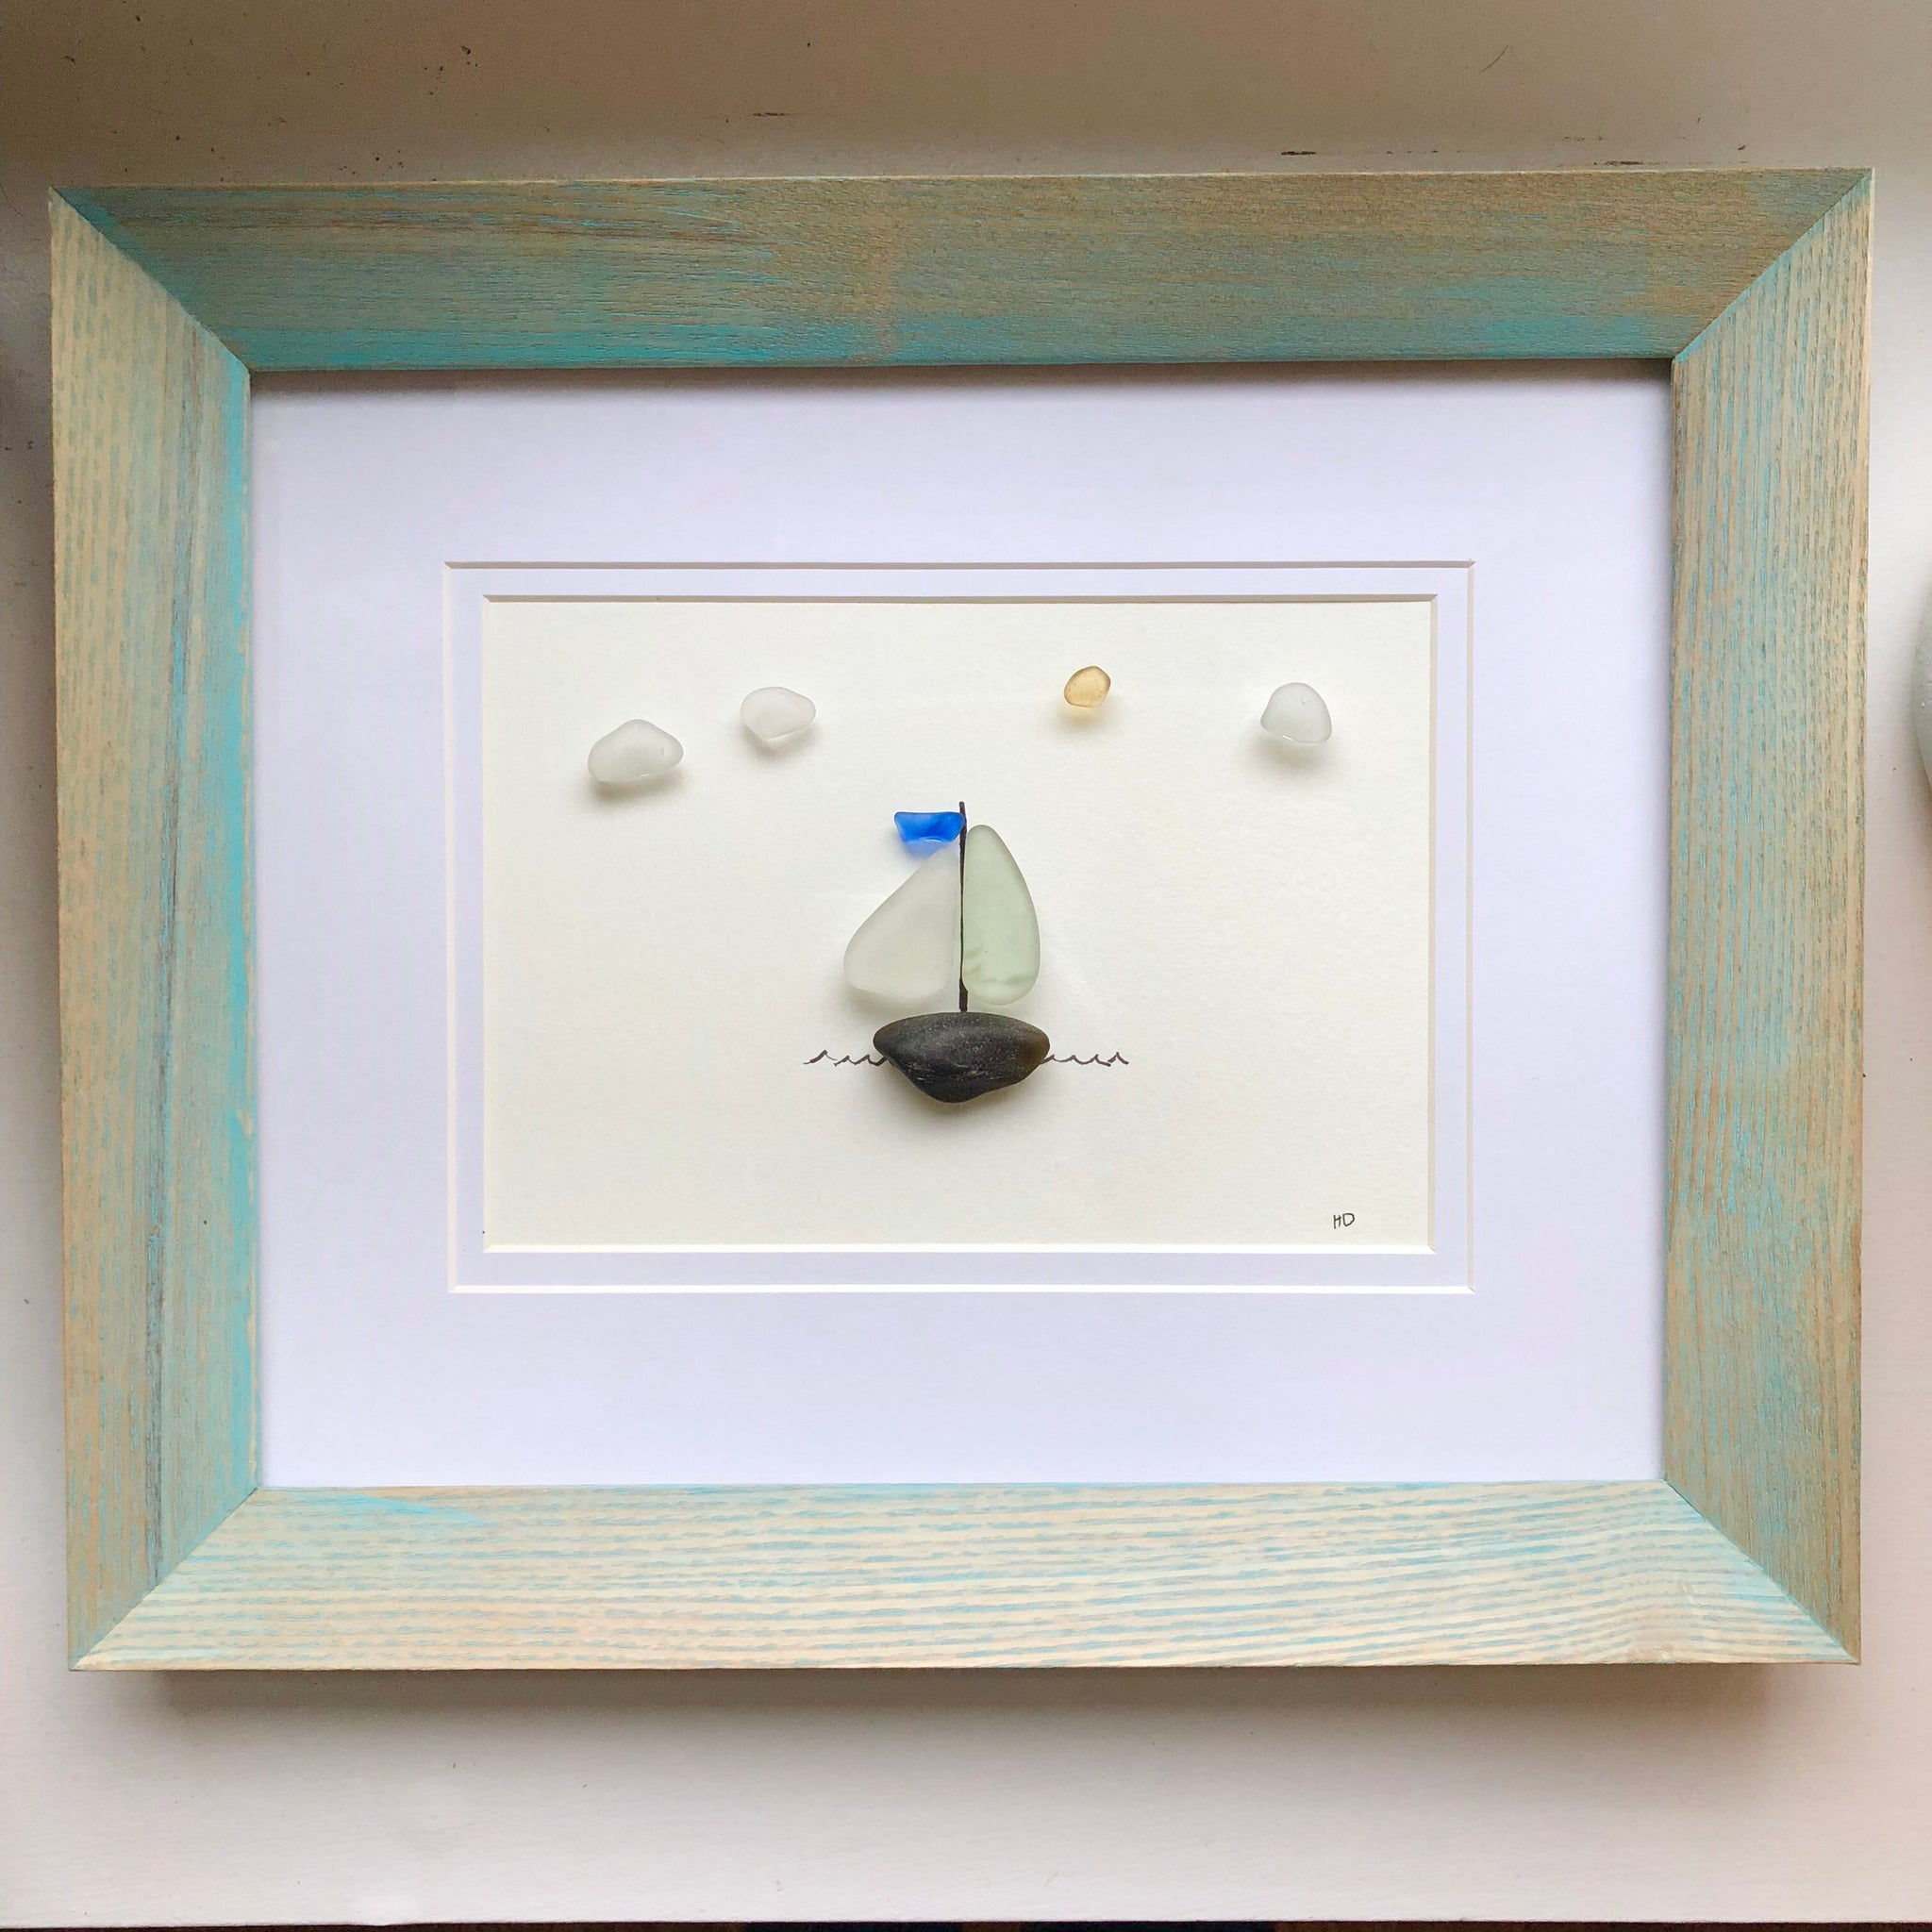 Sag Harbor Sailboat 8x10 Framed Seaglass Art